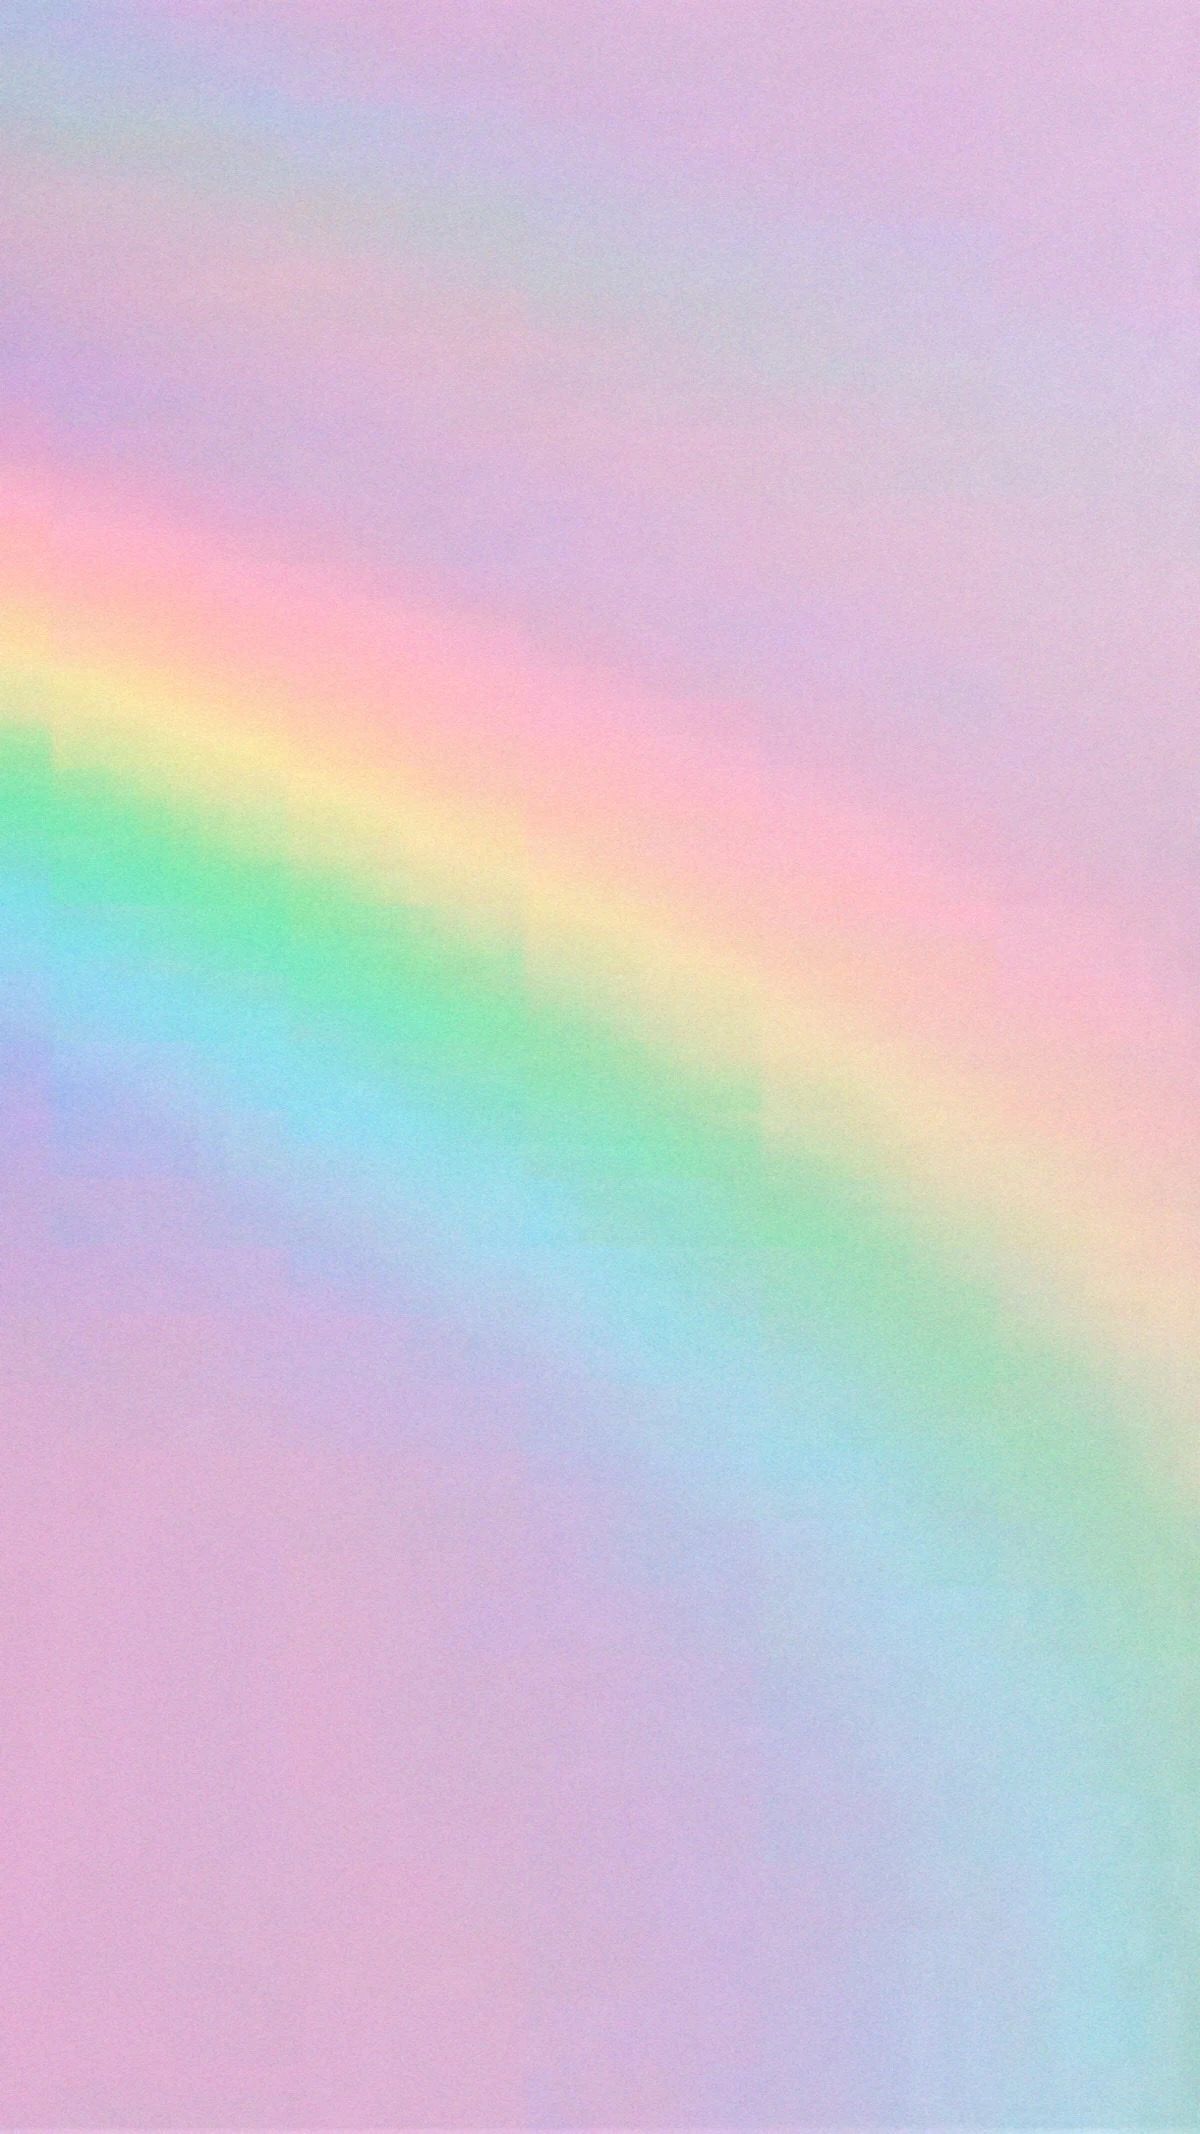 Rainbow Aesthetic Wallpapers Top Free Rainbow Aesthetic